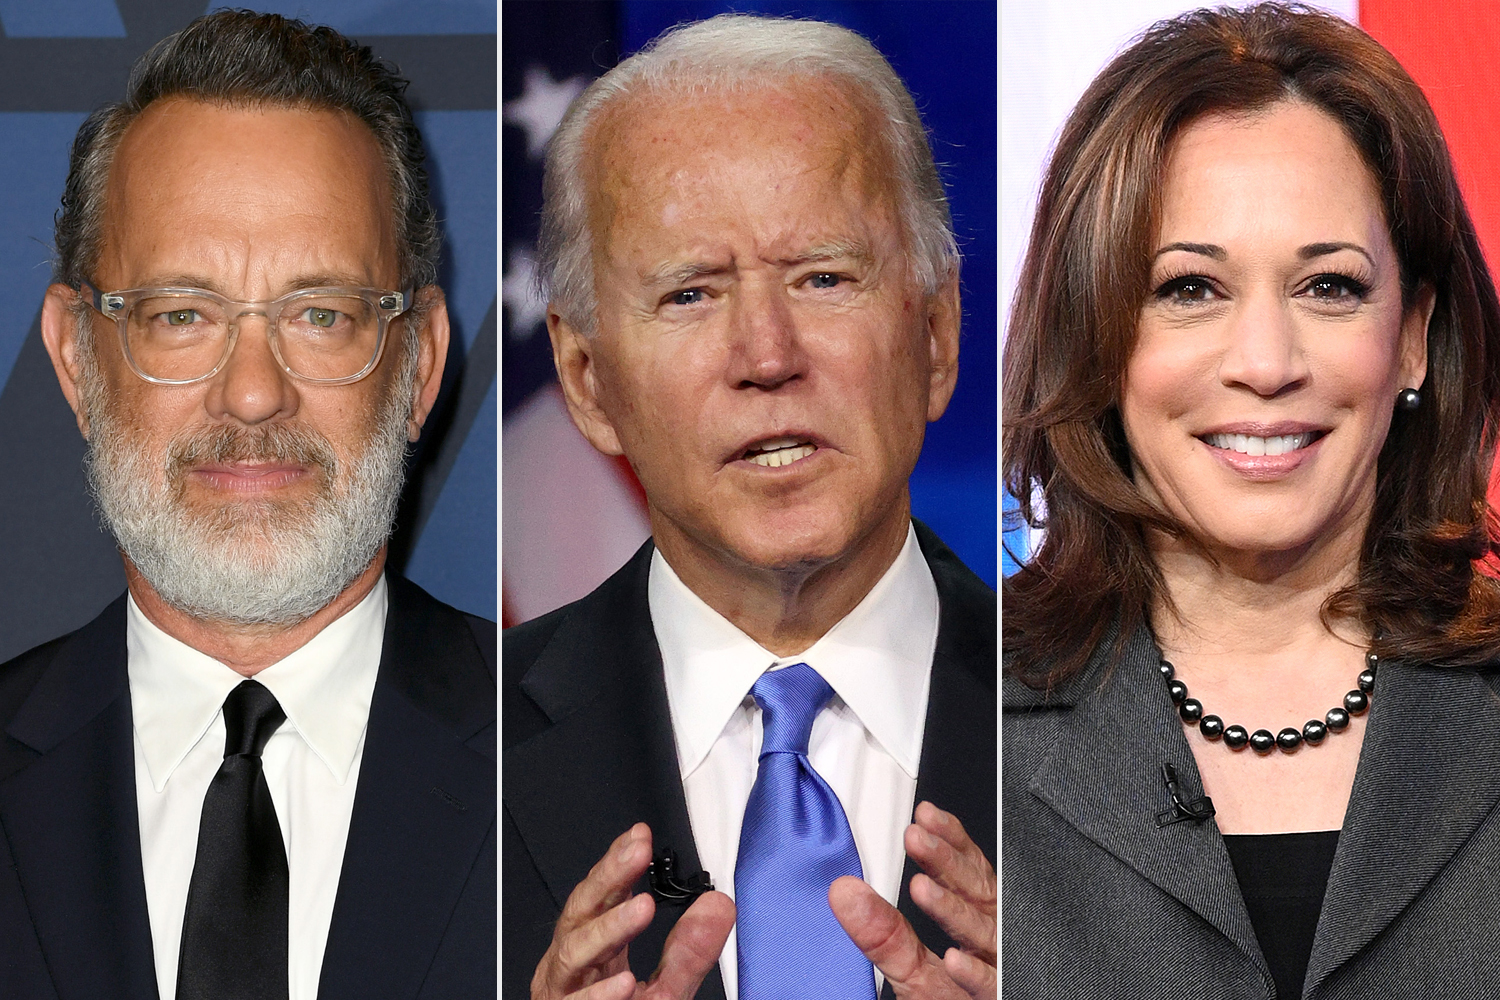 Tom Hanks, Joe Biden, Kamala Harris